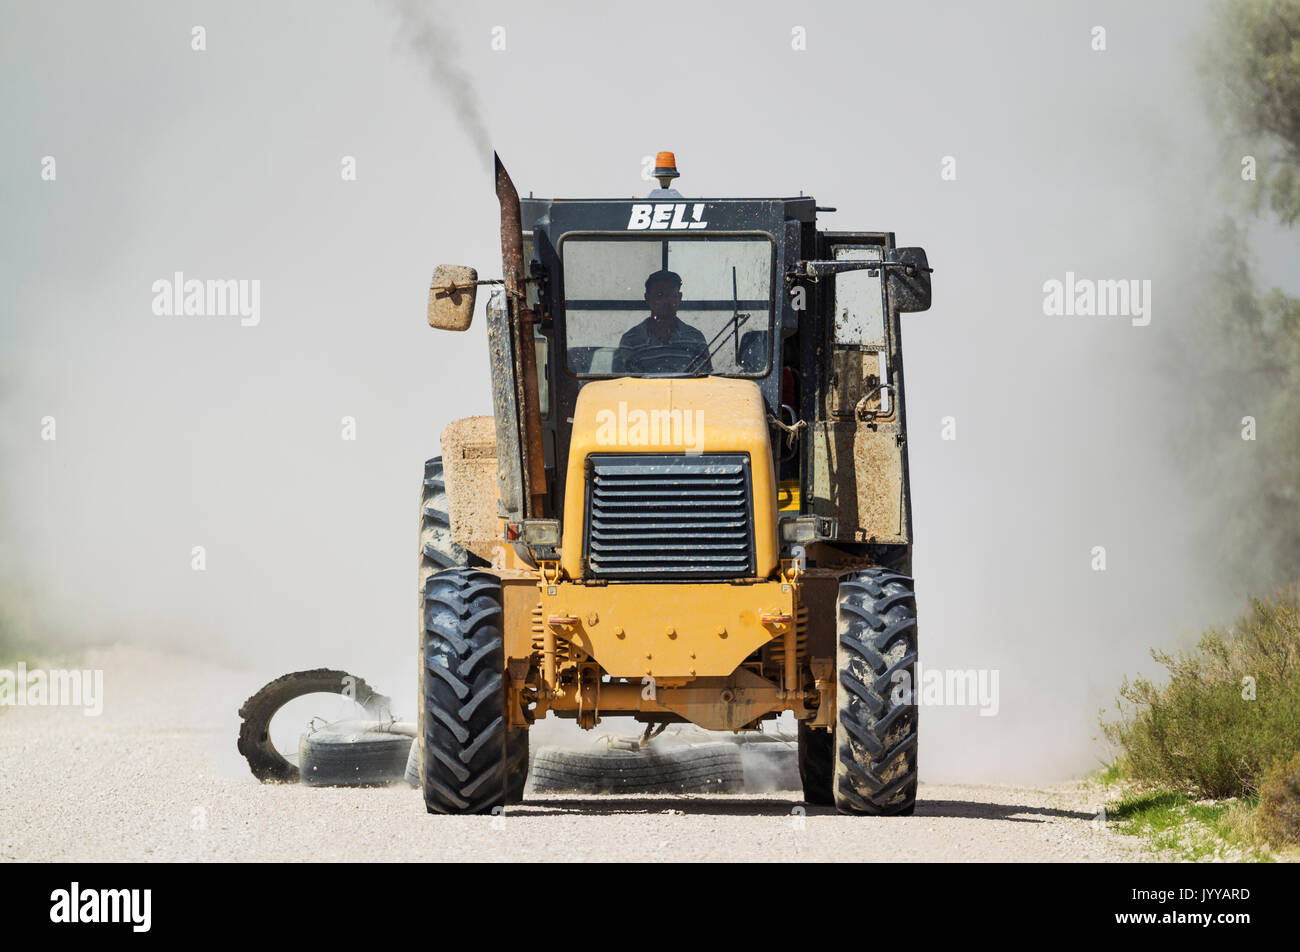 A tractor pulling tyres for grading the parks gravel roads, Kalahari Desert, Kgalagadi Transfrontier Park, South Africa - Stock Image